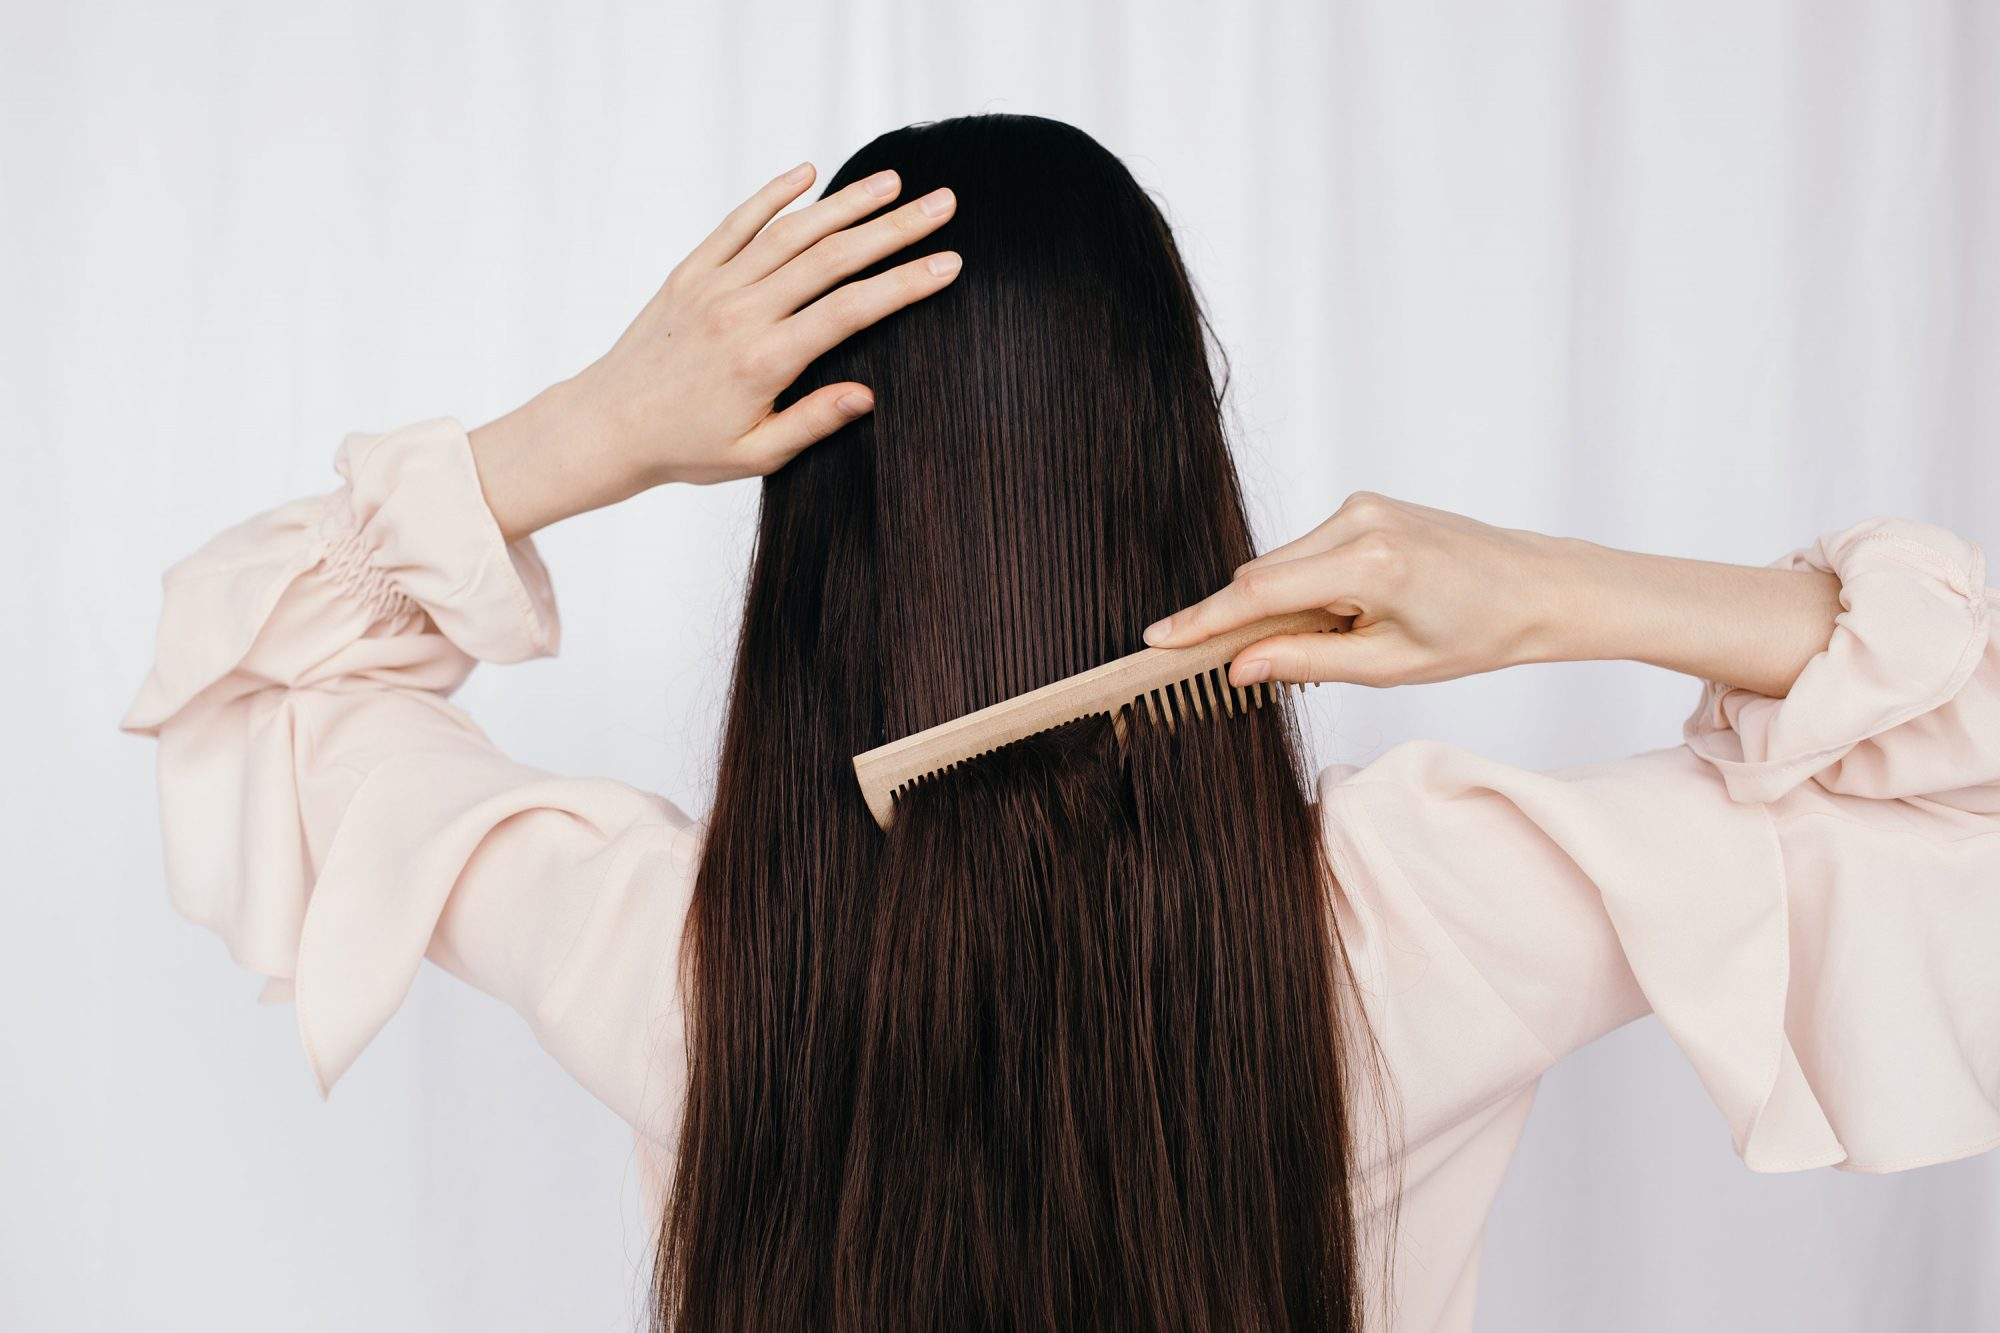 The 11 Best Hair Vitamins, According to Thousands of Customer Reviews